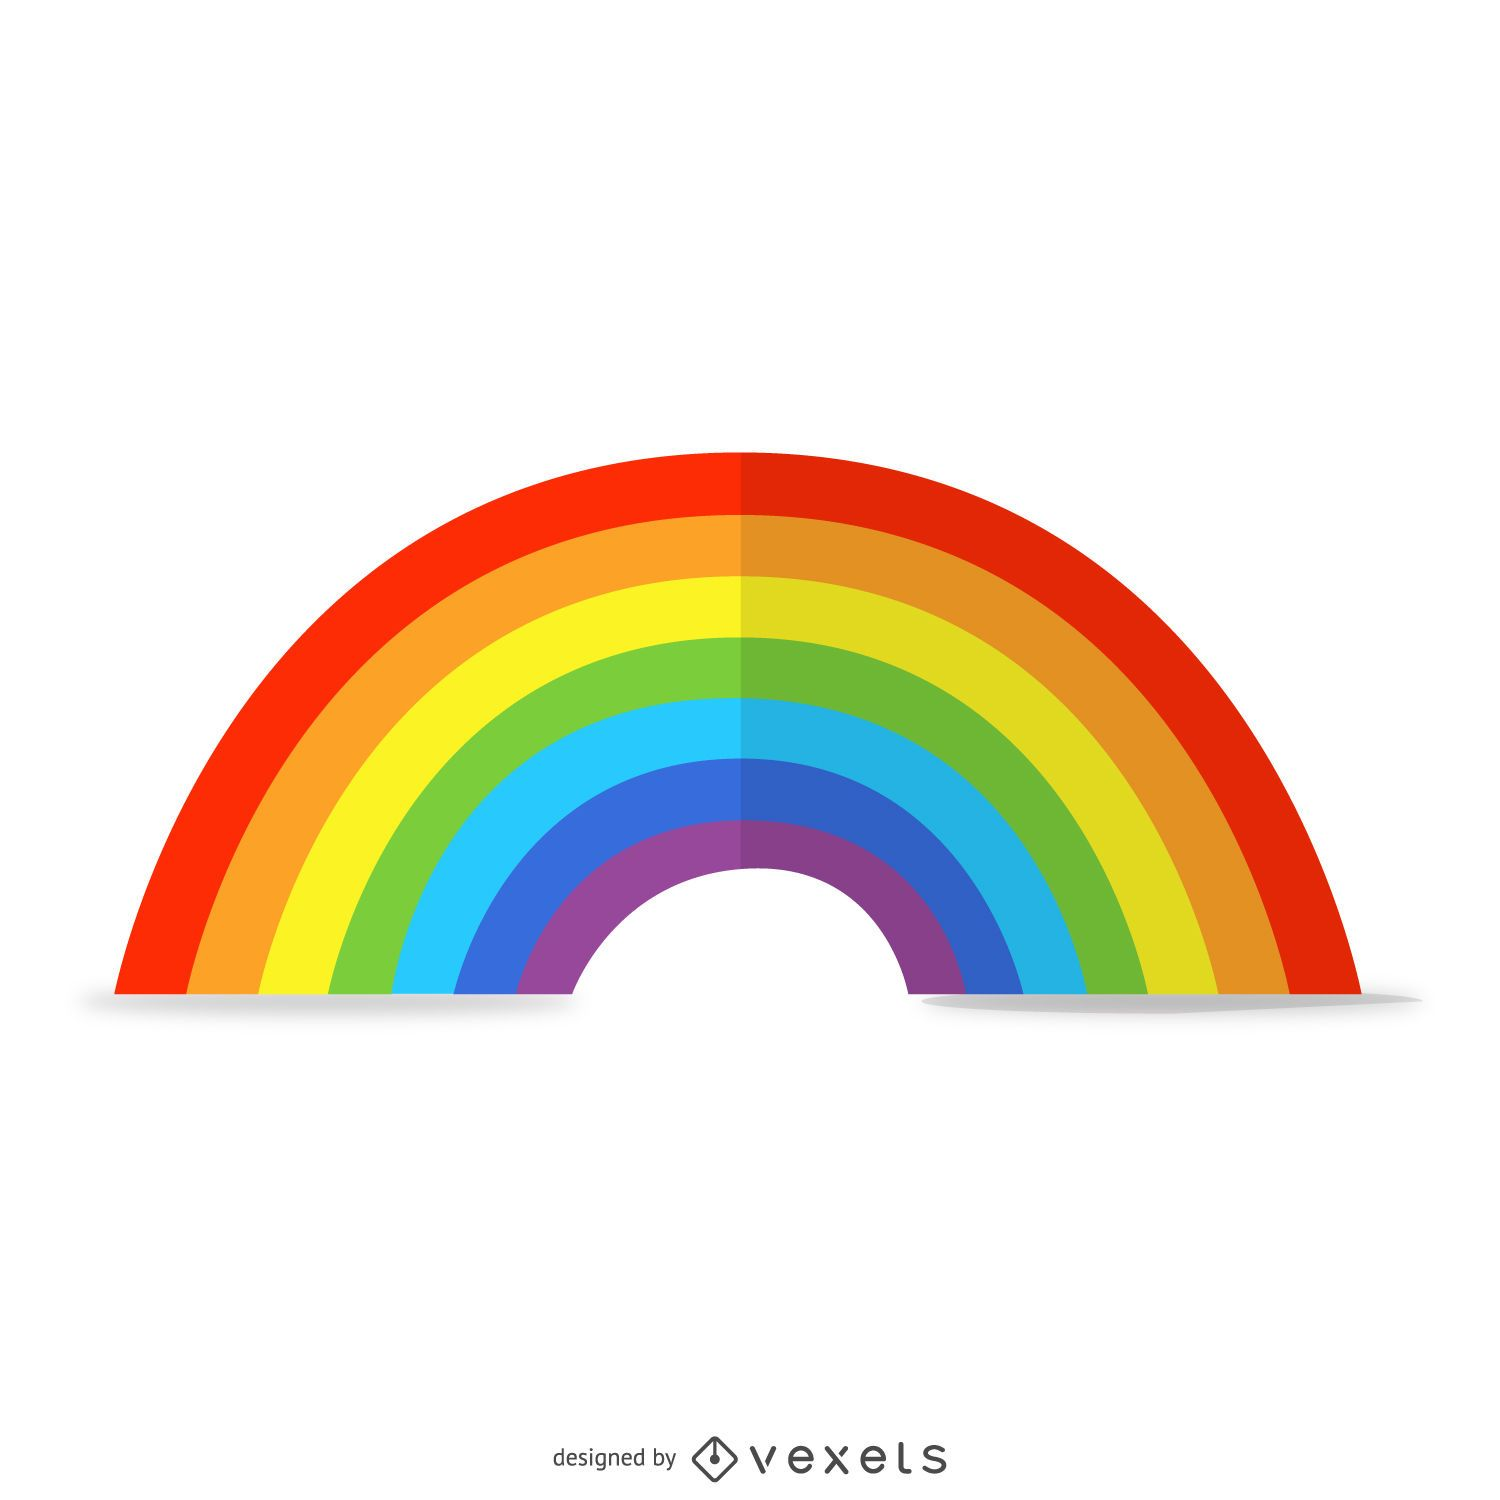 rainbow illustrations and clipart - photo #27